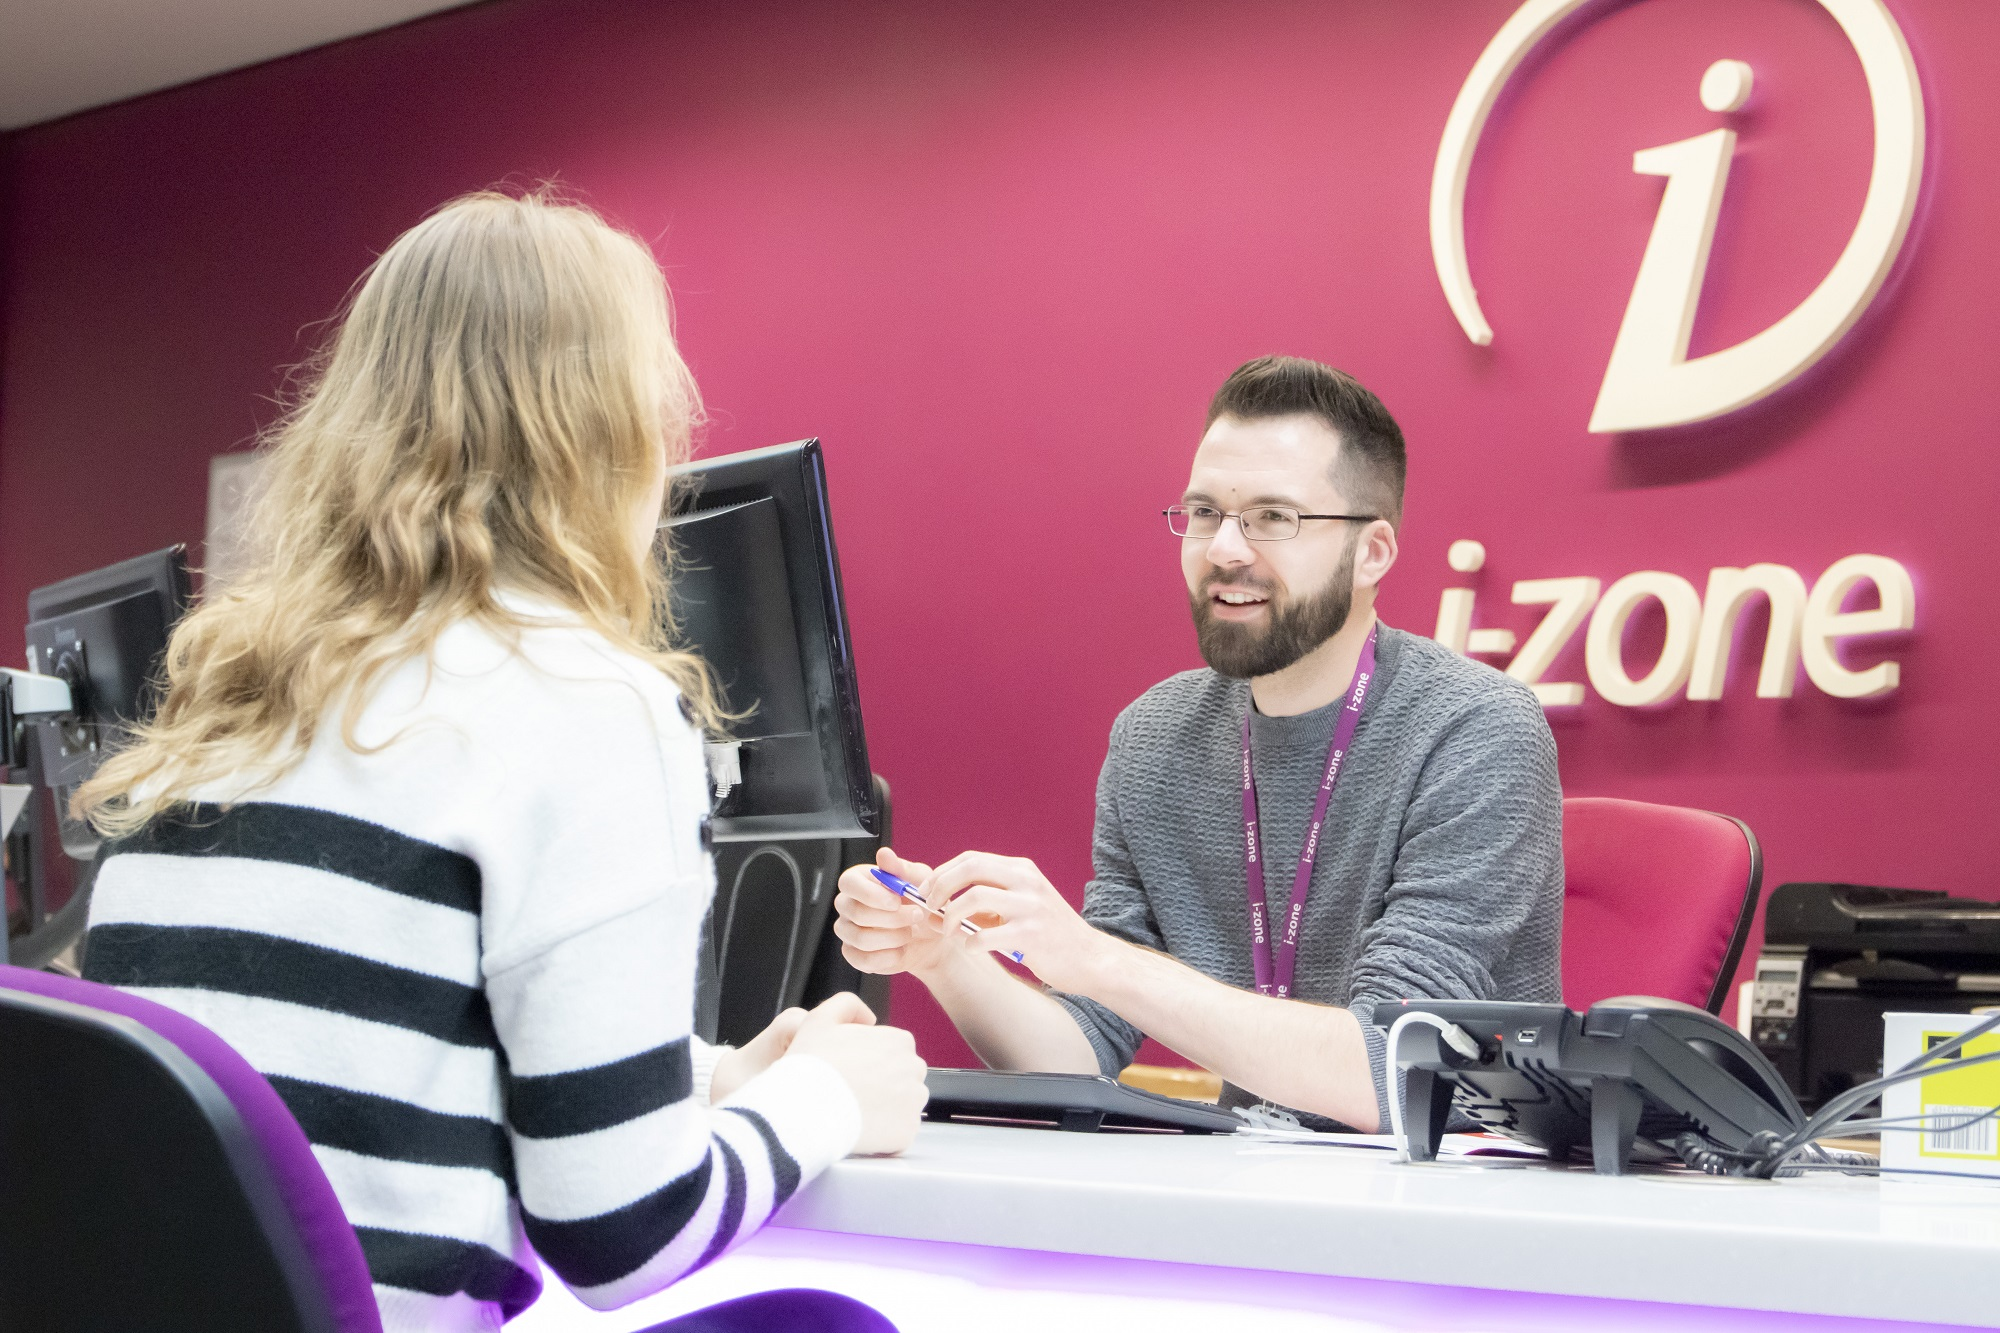 i-zone and IT Hub extended summer opening hours